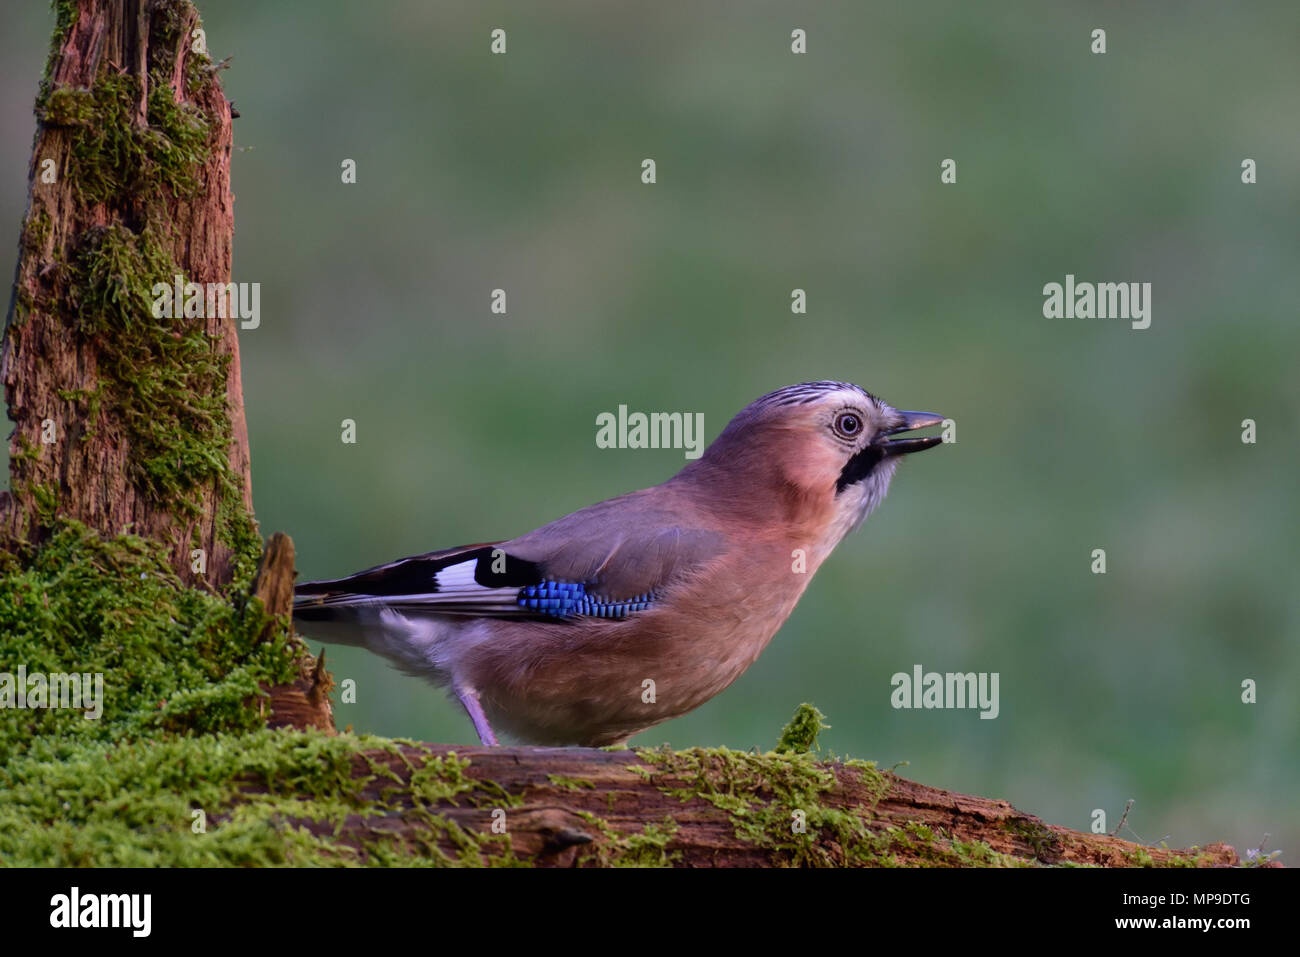 Jay looking to the right, on the wood, (Garrulus glandarius) - Stock Image